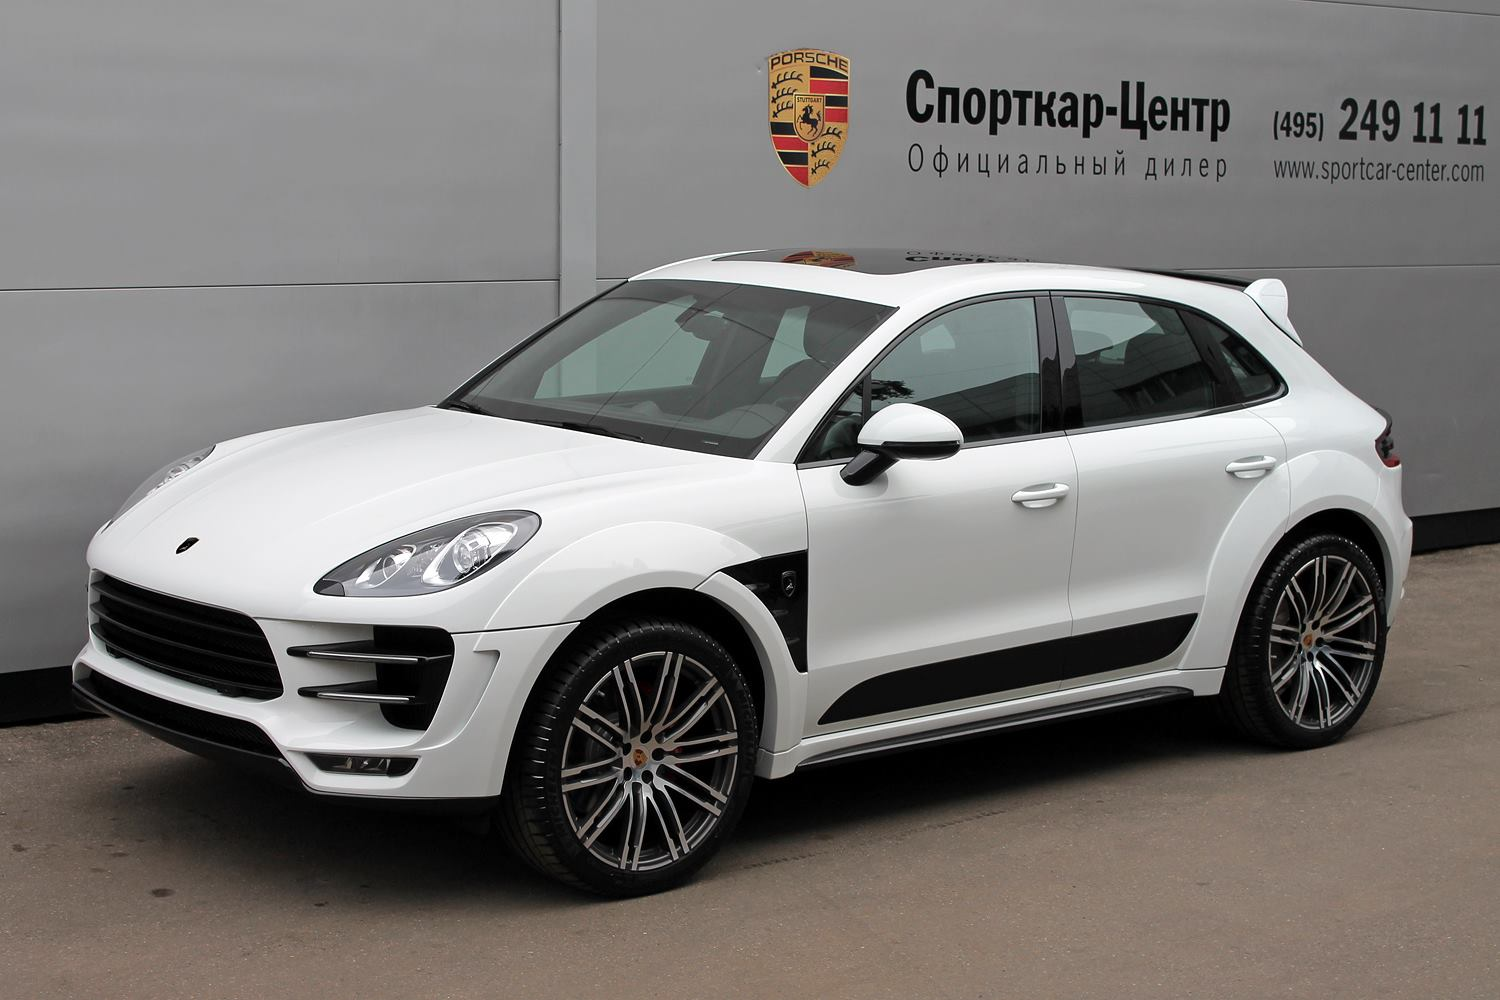 White Porsche Macan Ursa by Topcar for Sale - autoevolution